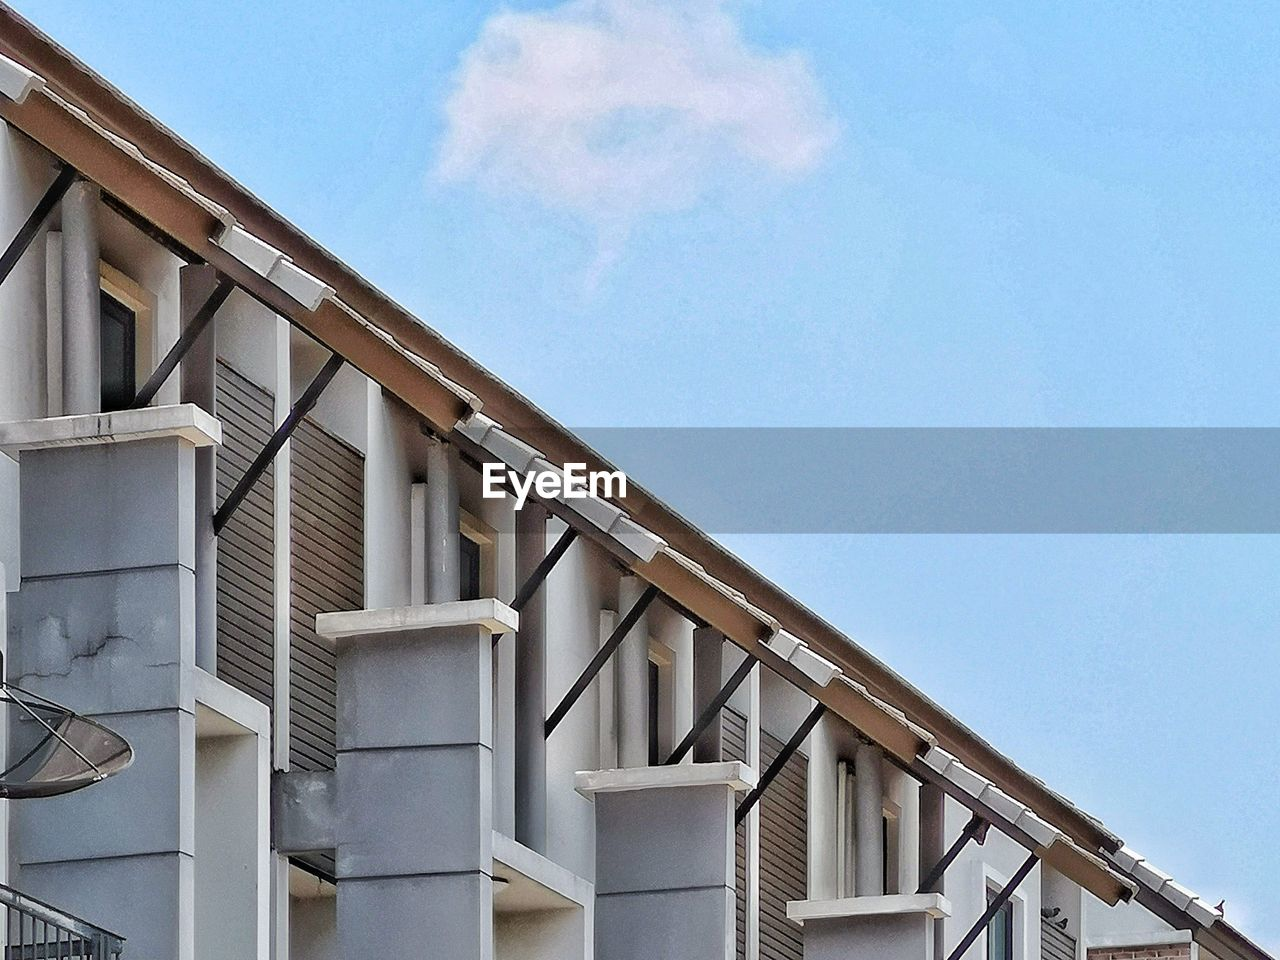 sky, built structure, architecture, low angle view, building exterior, cloud - sky, day, no people, blue, nature, building, railing, outdoors, sunlight, wood - material, copy space, window, roof, residential district, balcony